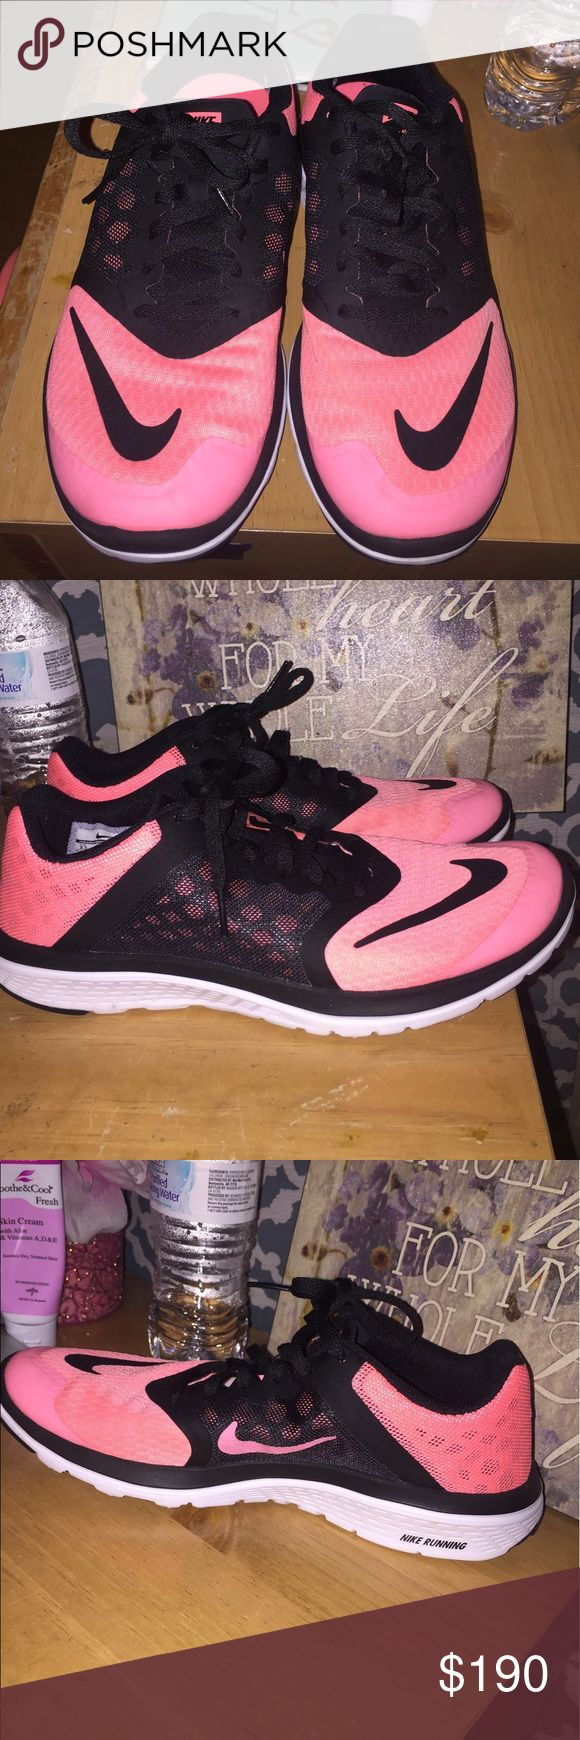 NIKE Fusion lite run 3 Custom made. Hot pink & black. Barely worn as my feet are too wide. So comfortable and cute. Nike Shoes Sneakers